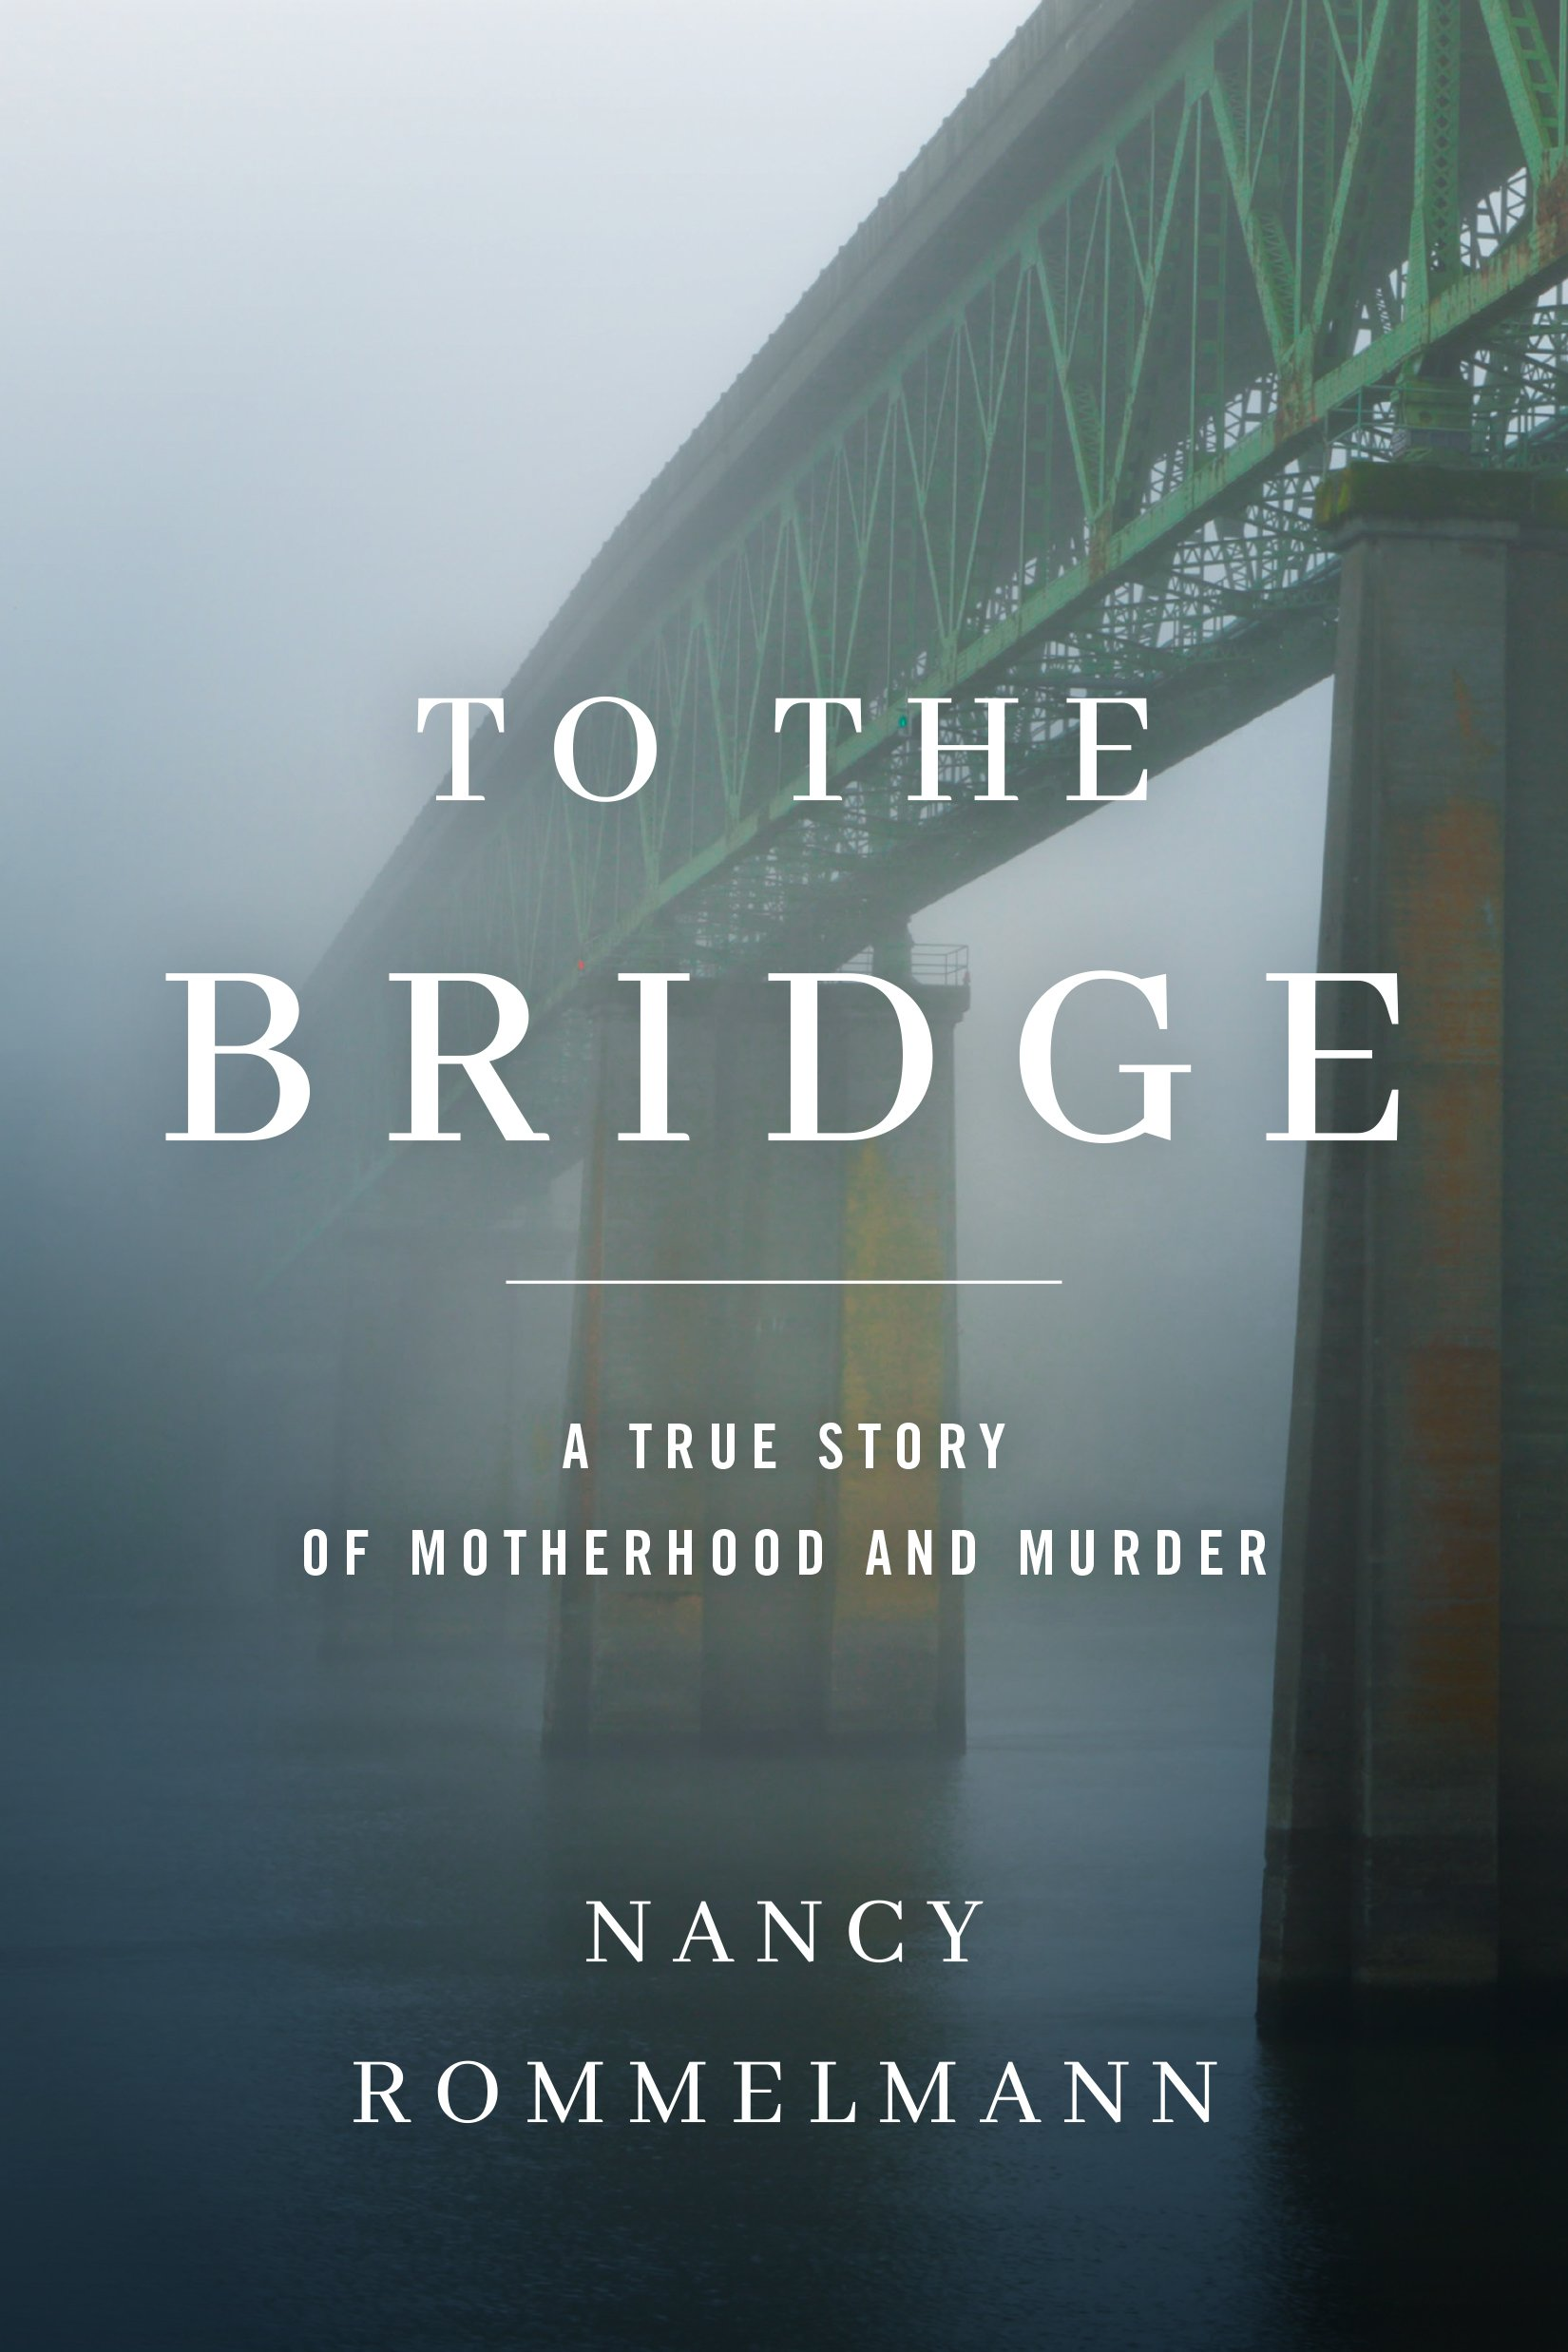 The cover of the book To the Bridge